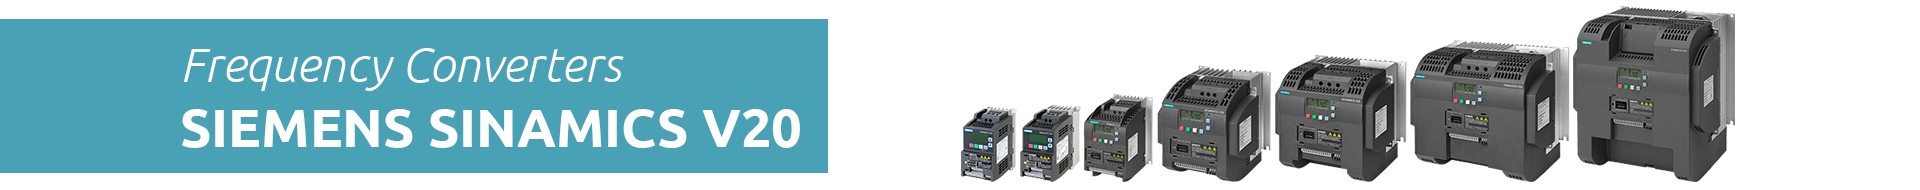 Frequency Converters Siemens Sinamics V20